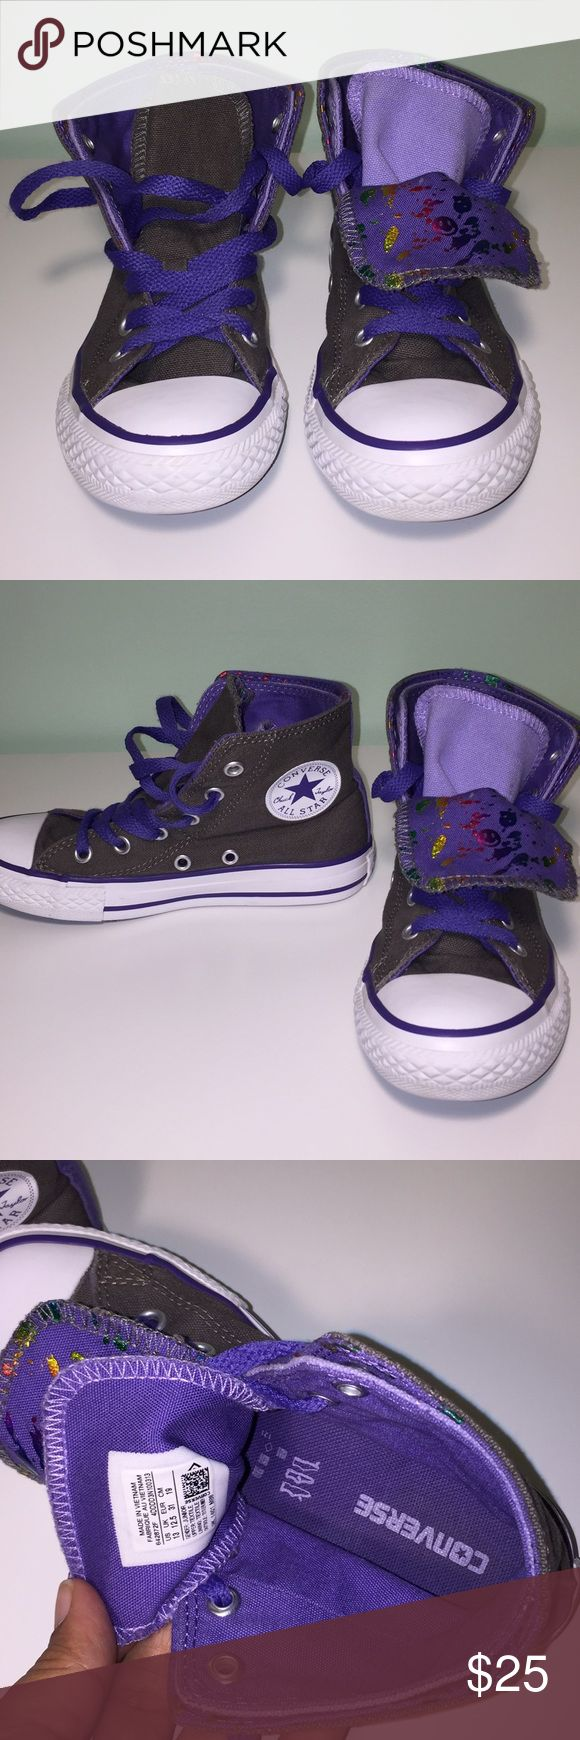 Girls High Top Converse Fun purple and grey with metallic details Converse Shoes Sneakers